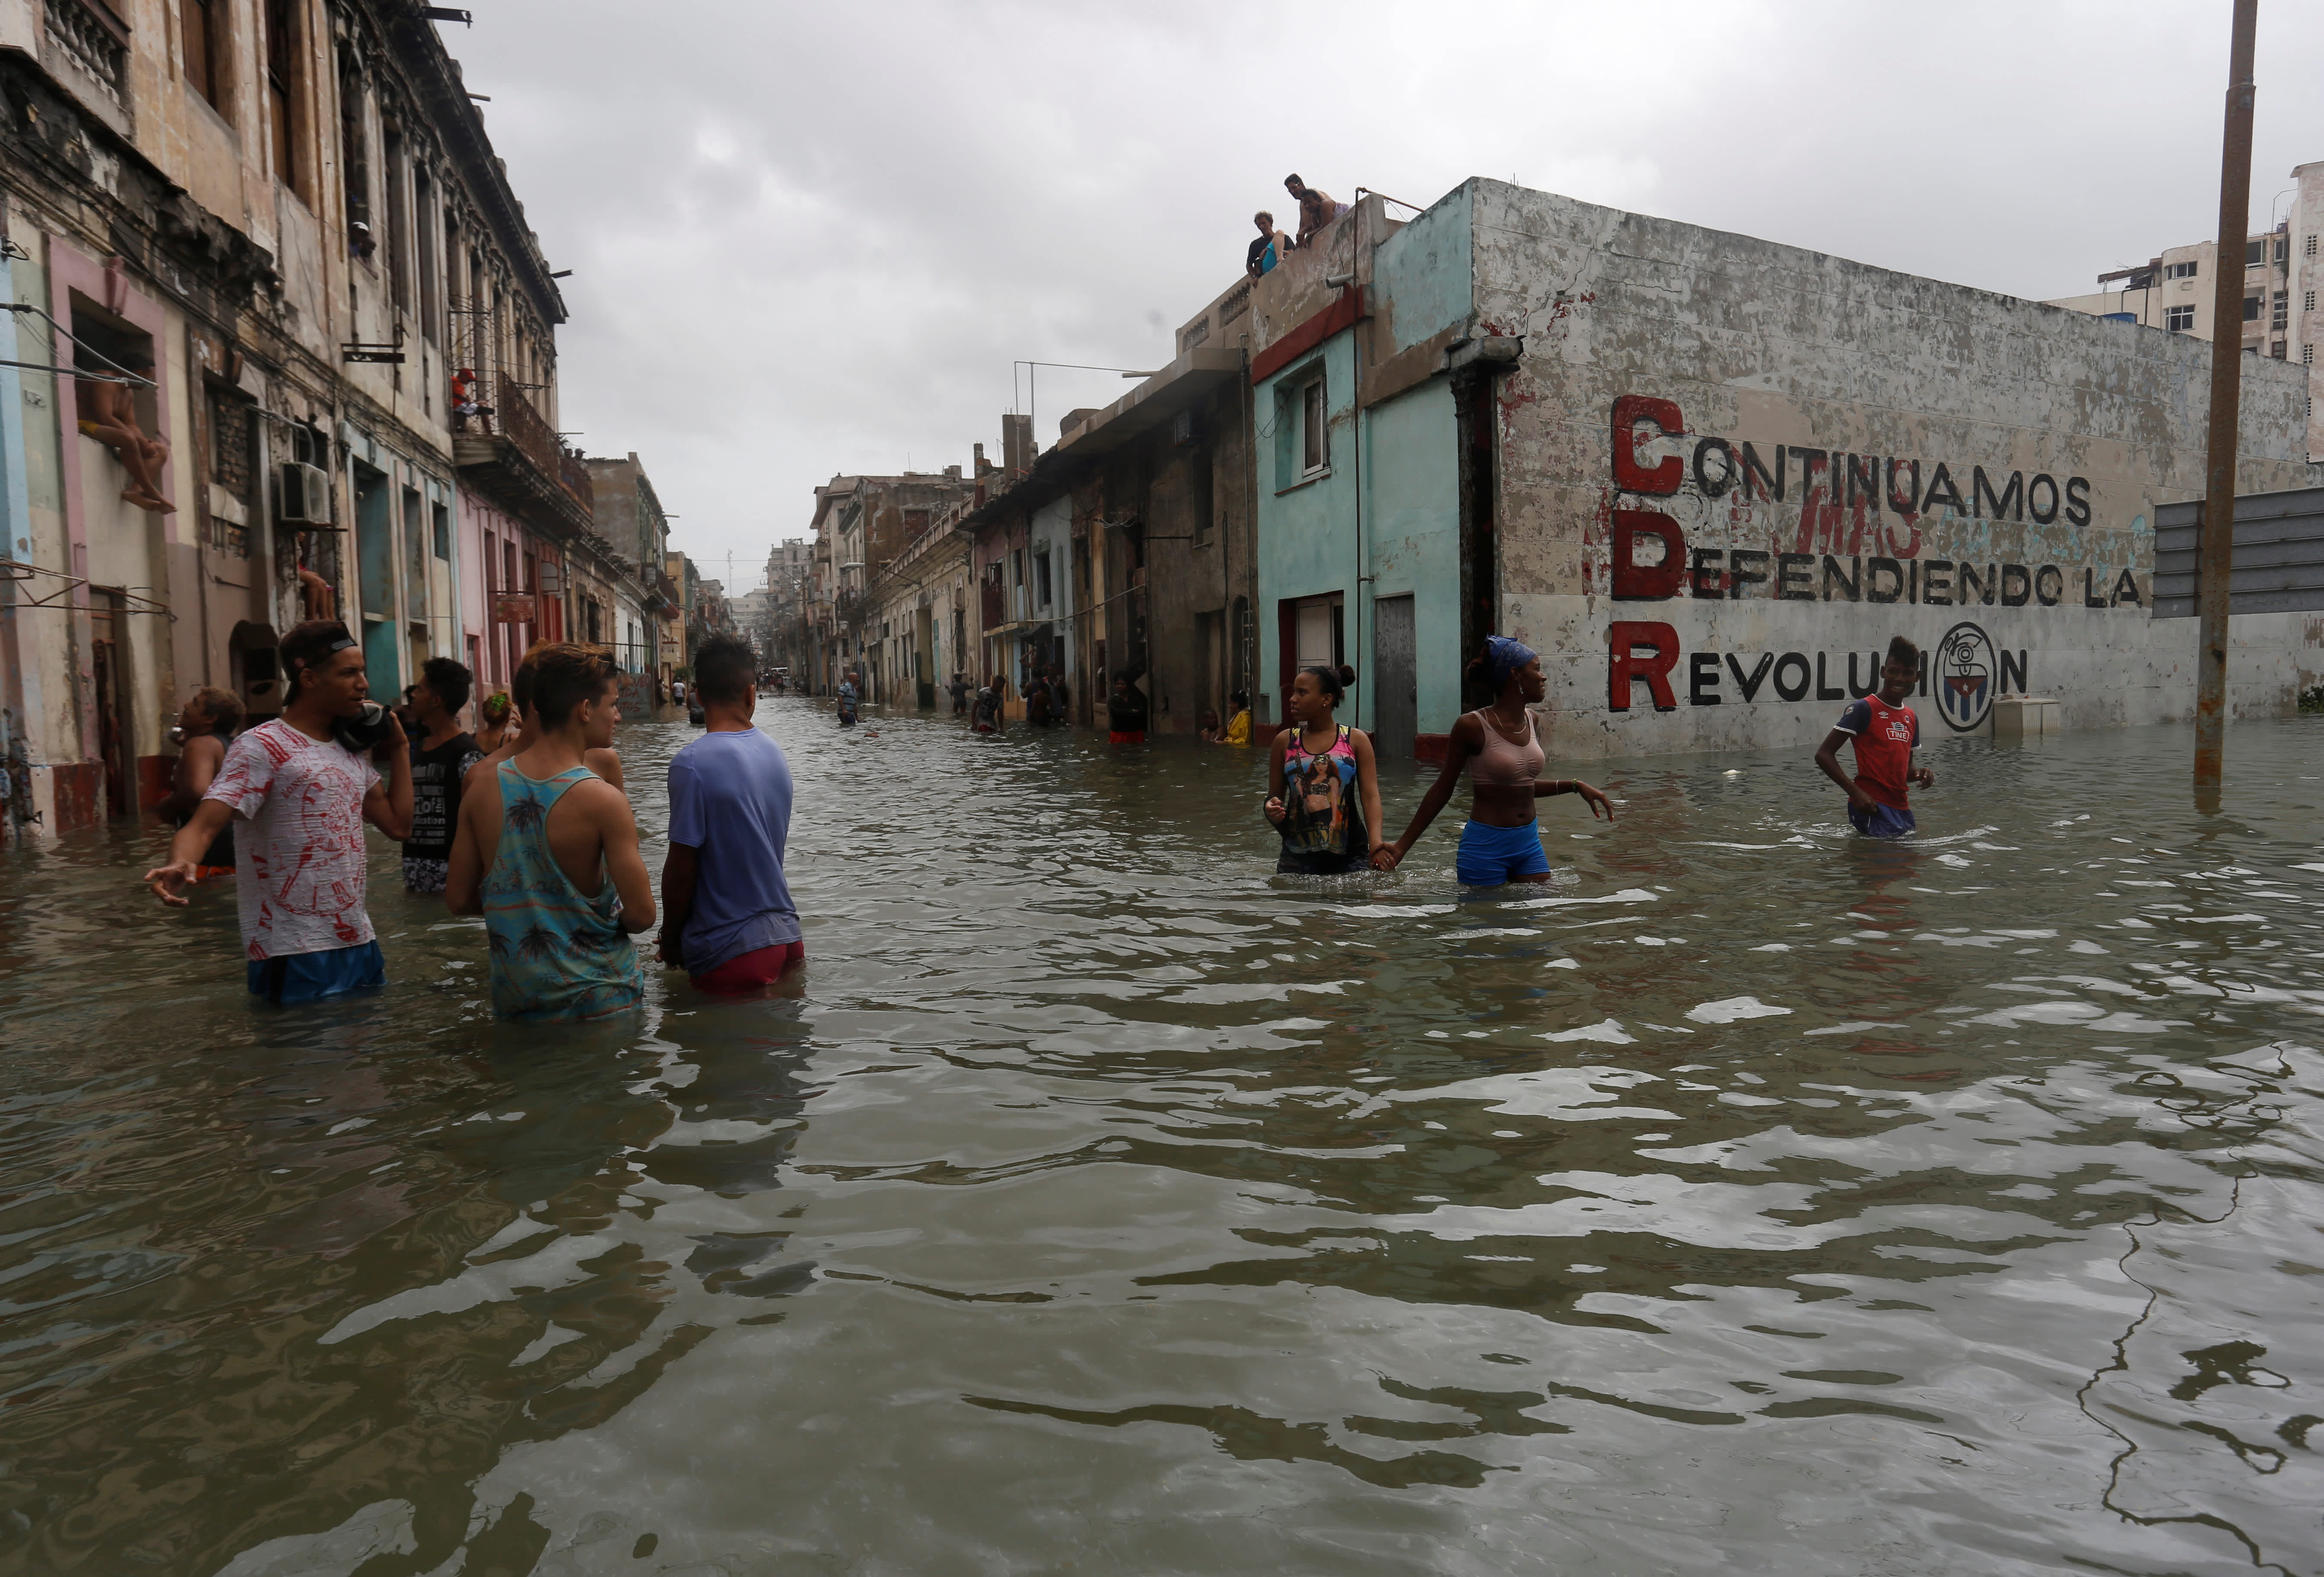 People wade through a flooded street, after the passing of Hurricane Irma, in Havana, Cuba. (Stringer/ Reuters)